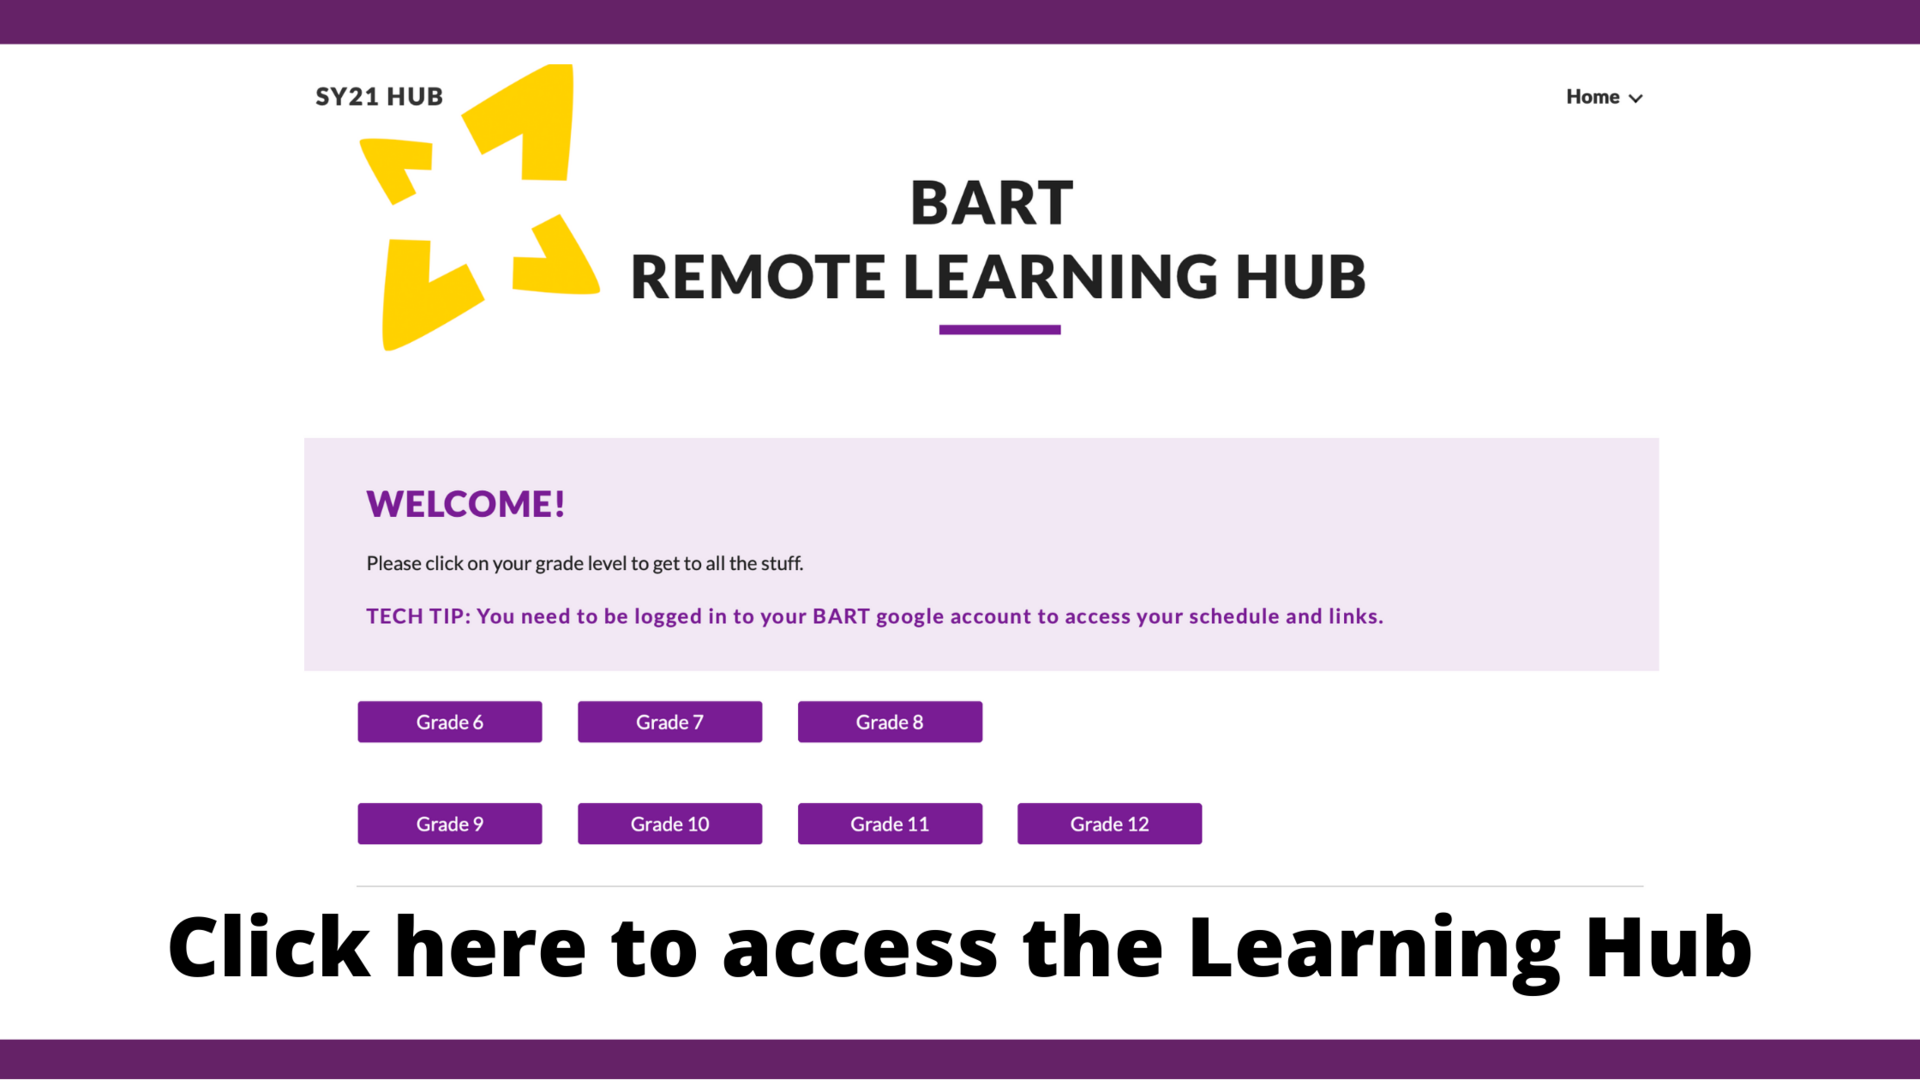 a screen shot of BART's remote learning hub